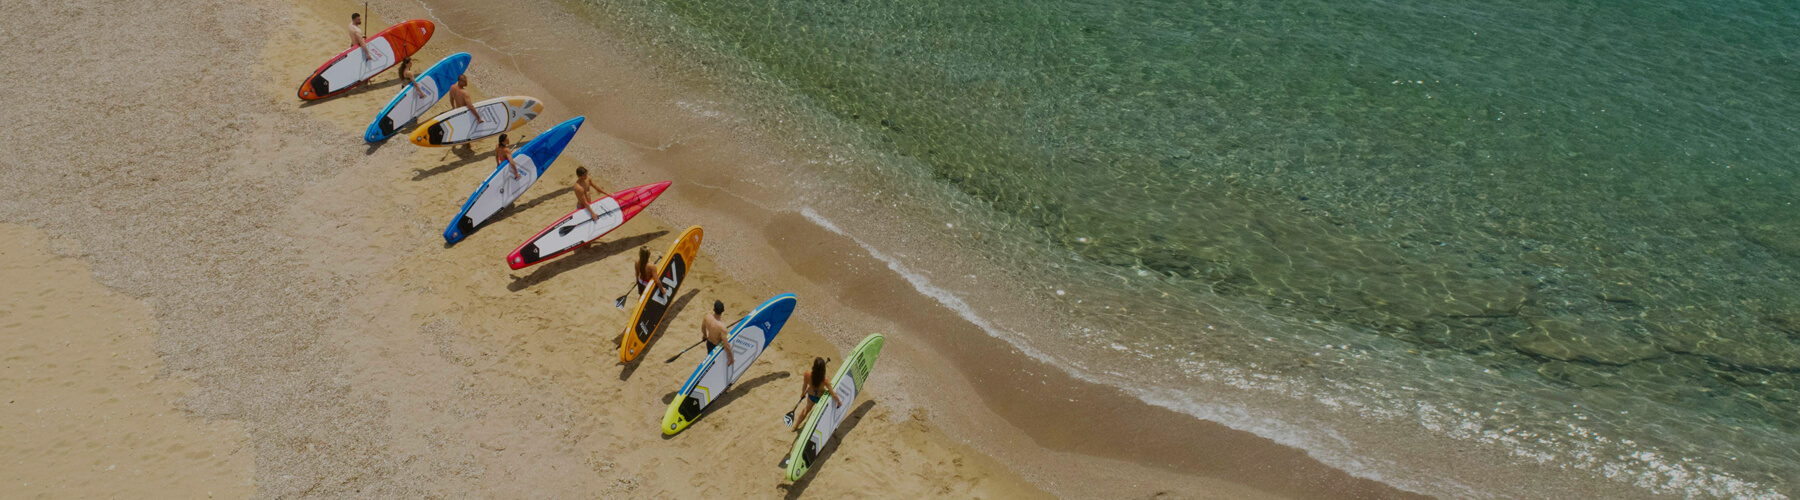 iSUP Paddle Boards in Ireland